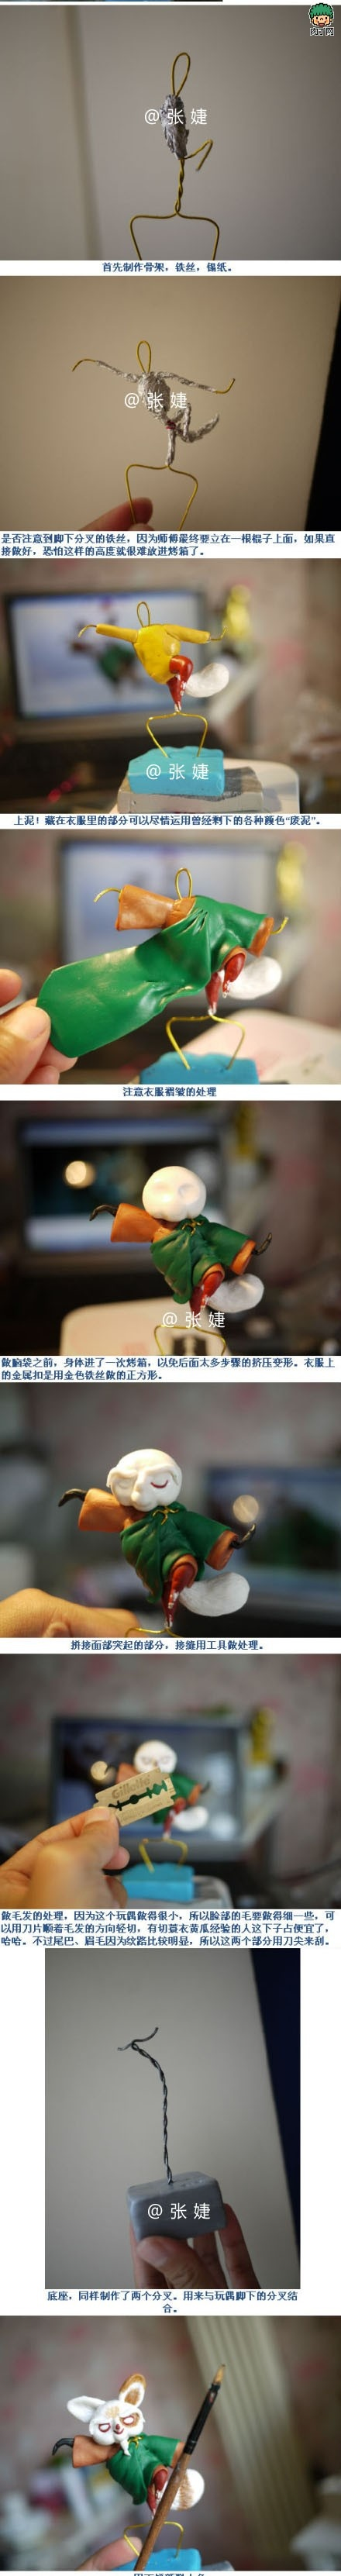 how to make a clay figurine, this one a Kung Fu Panda character